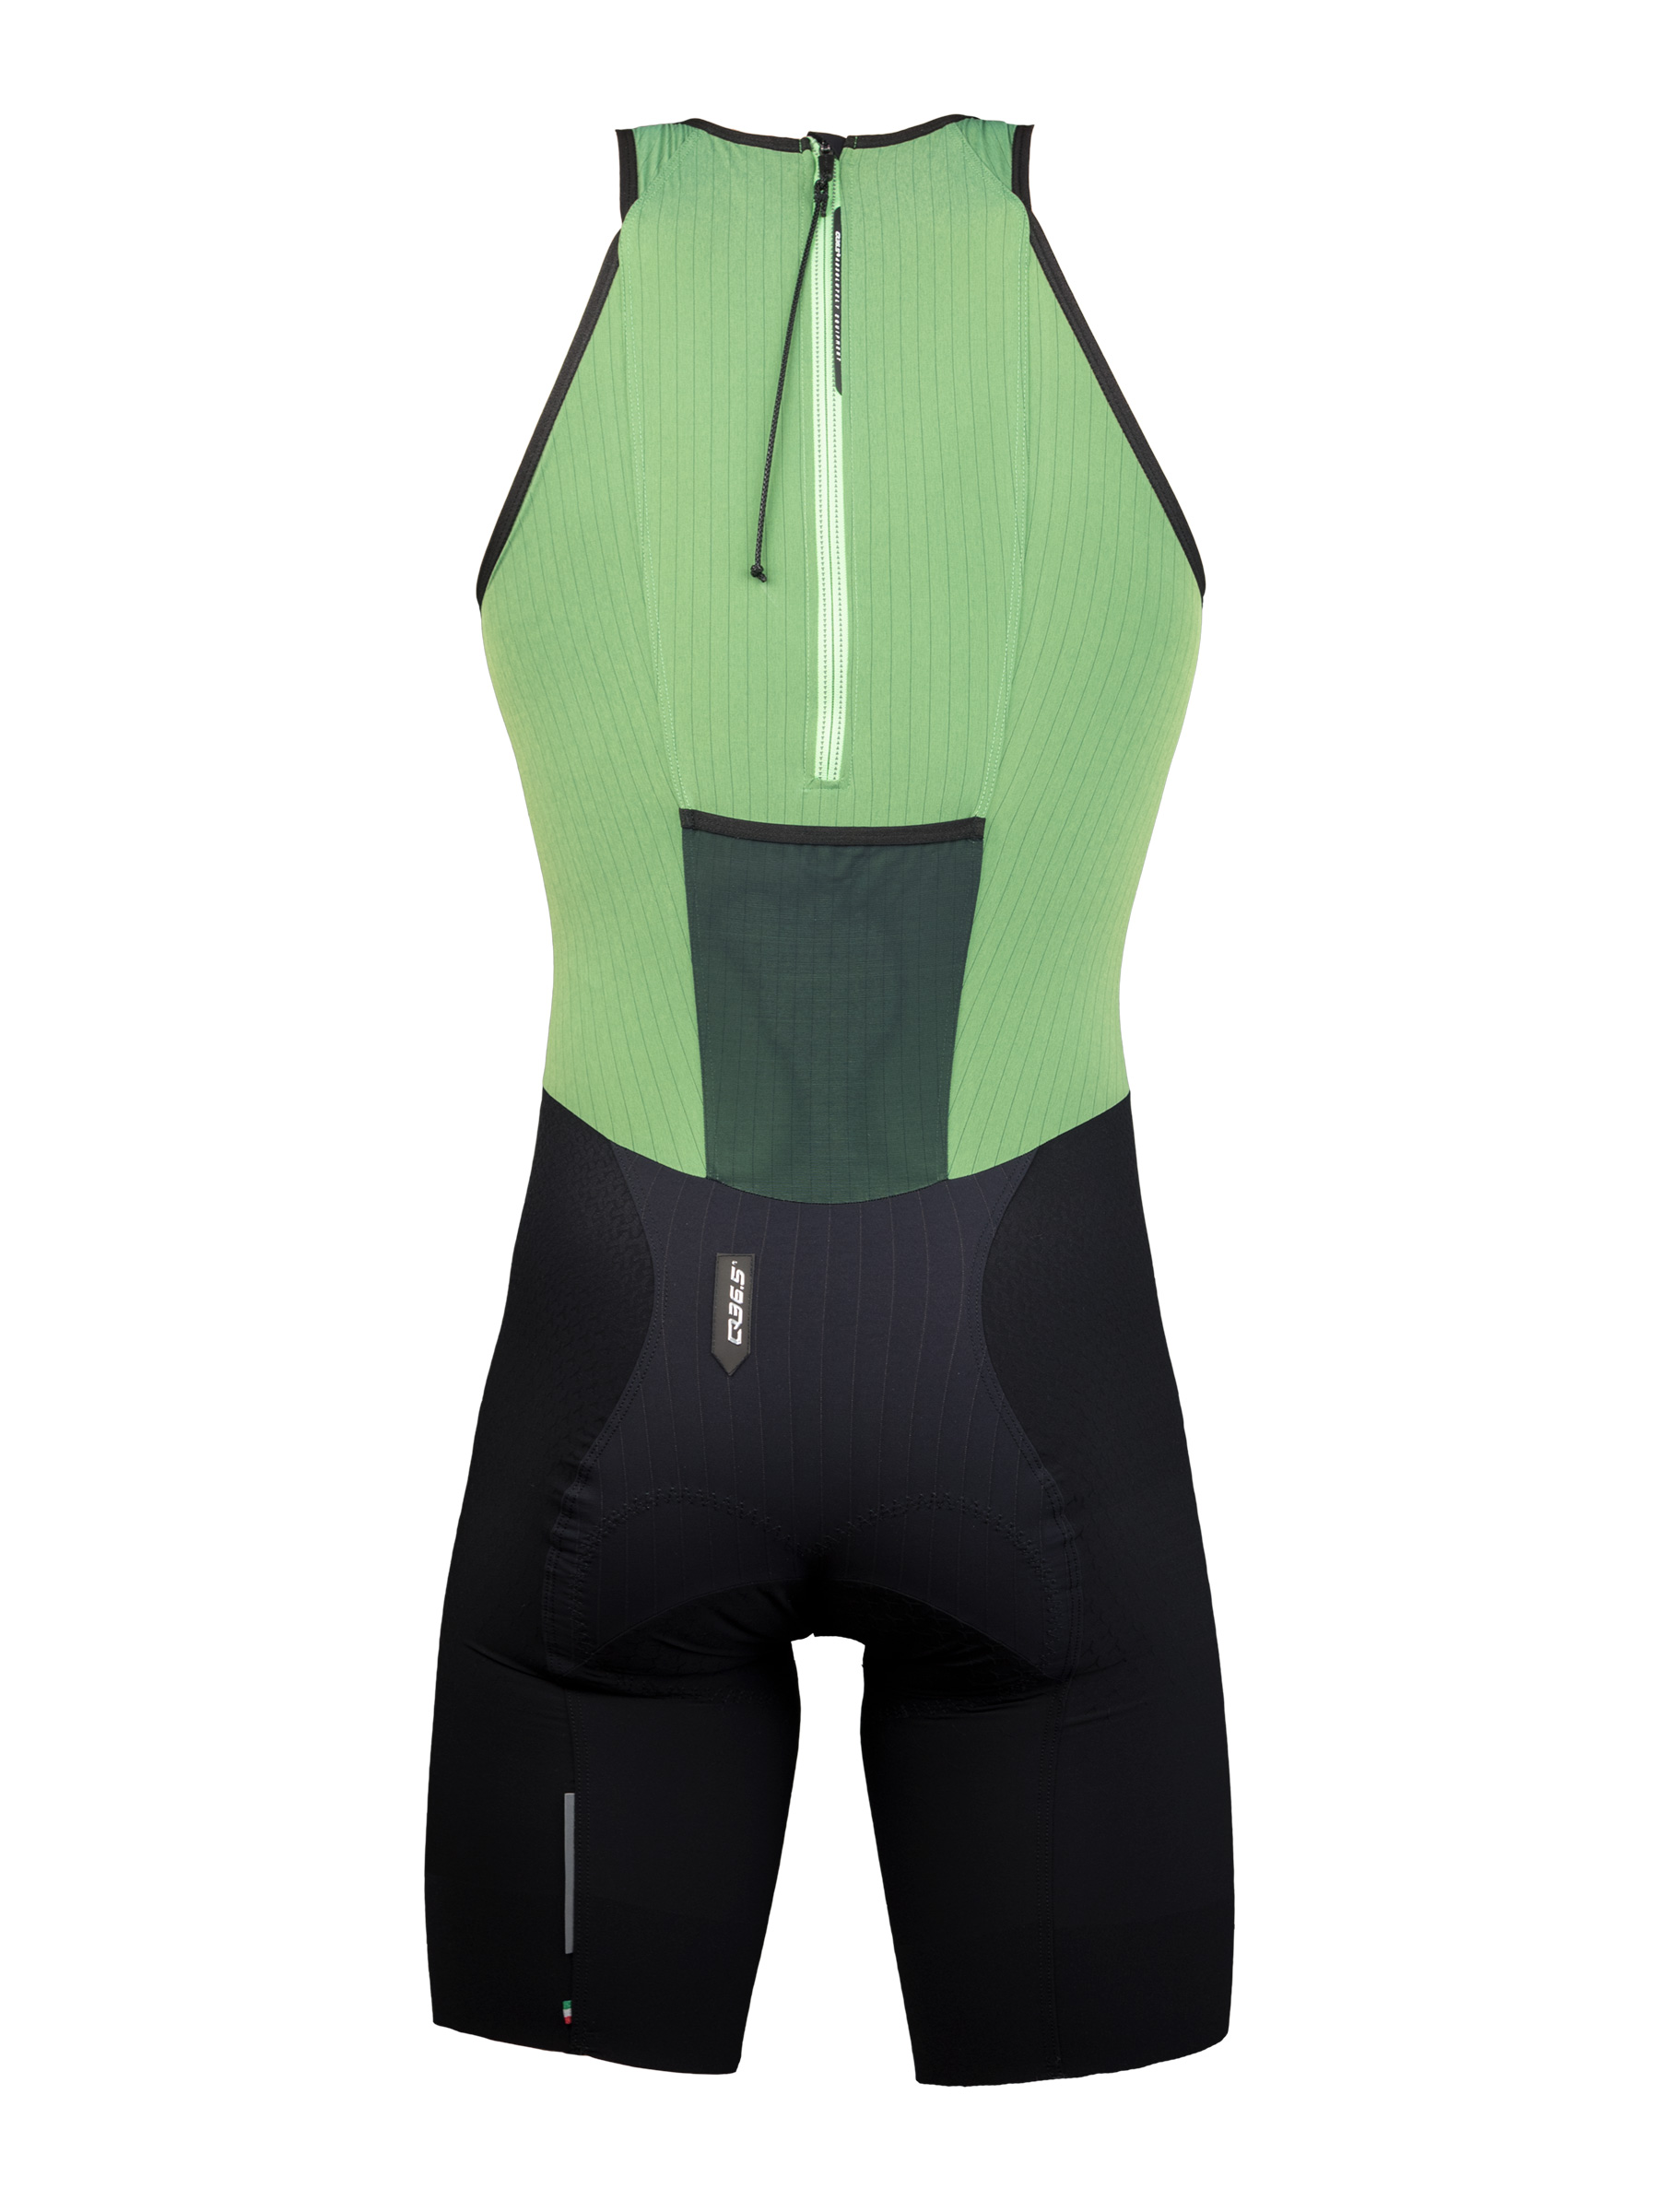 Triathlonanzug Tri Skinsuit